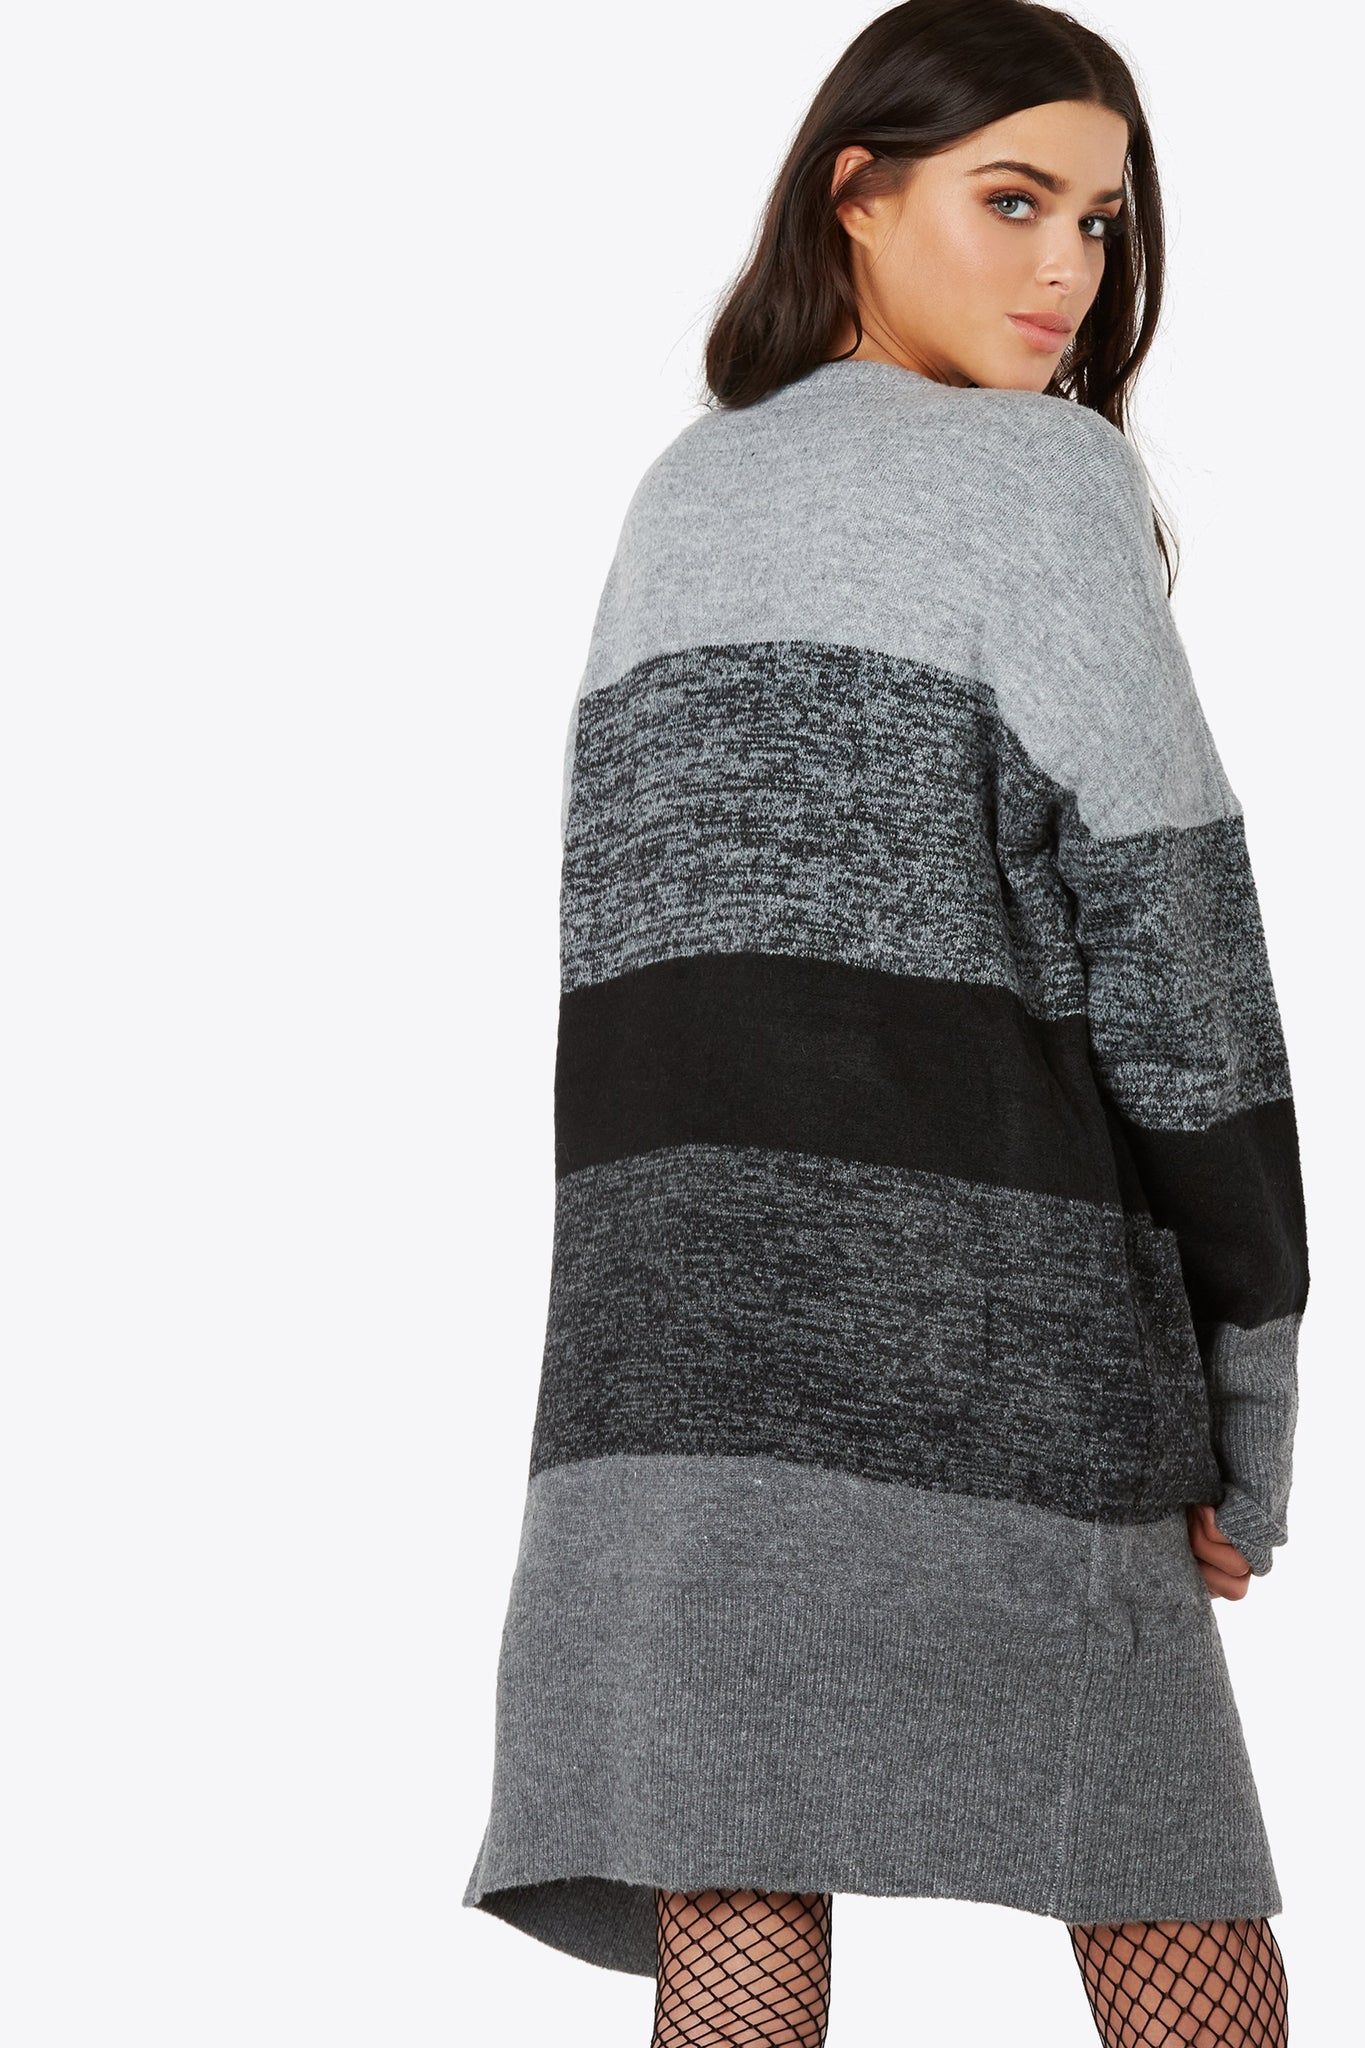 Stay cozy no matter in or outside in the soft knit long sleeve cardigan. Features front hidden pockets.